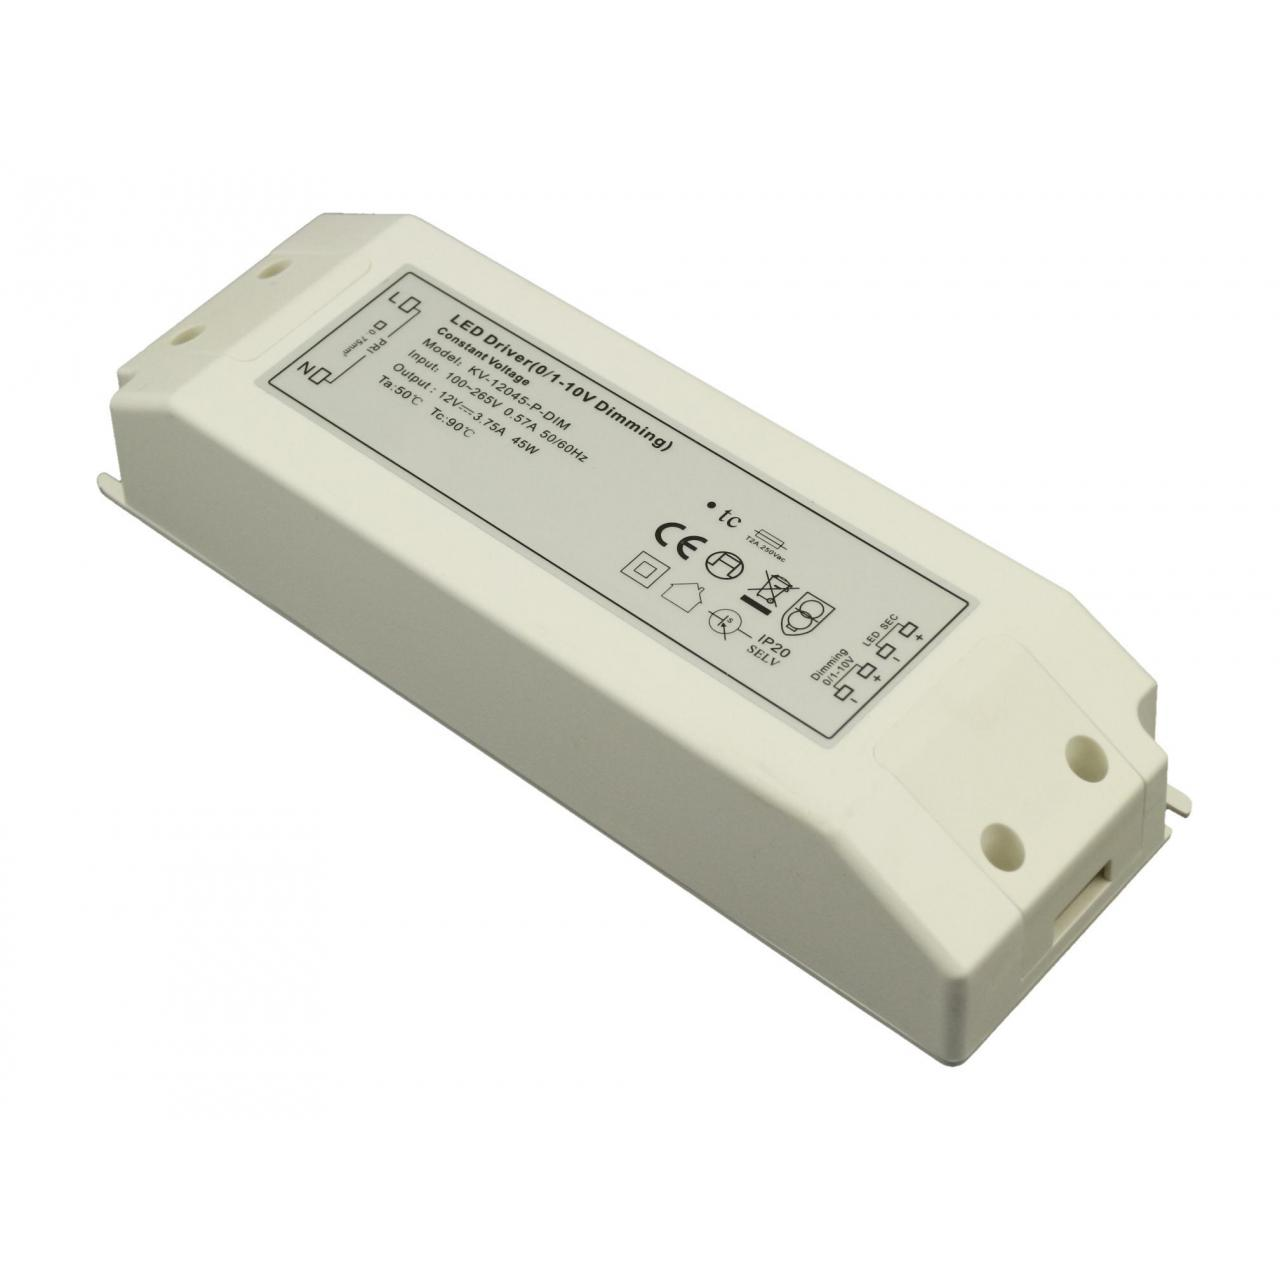 China 36W 0/1-10V Dimmable constant voltage led driver on sale